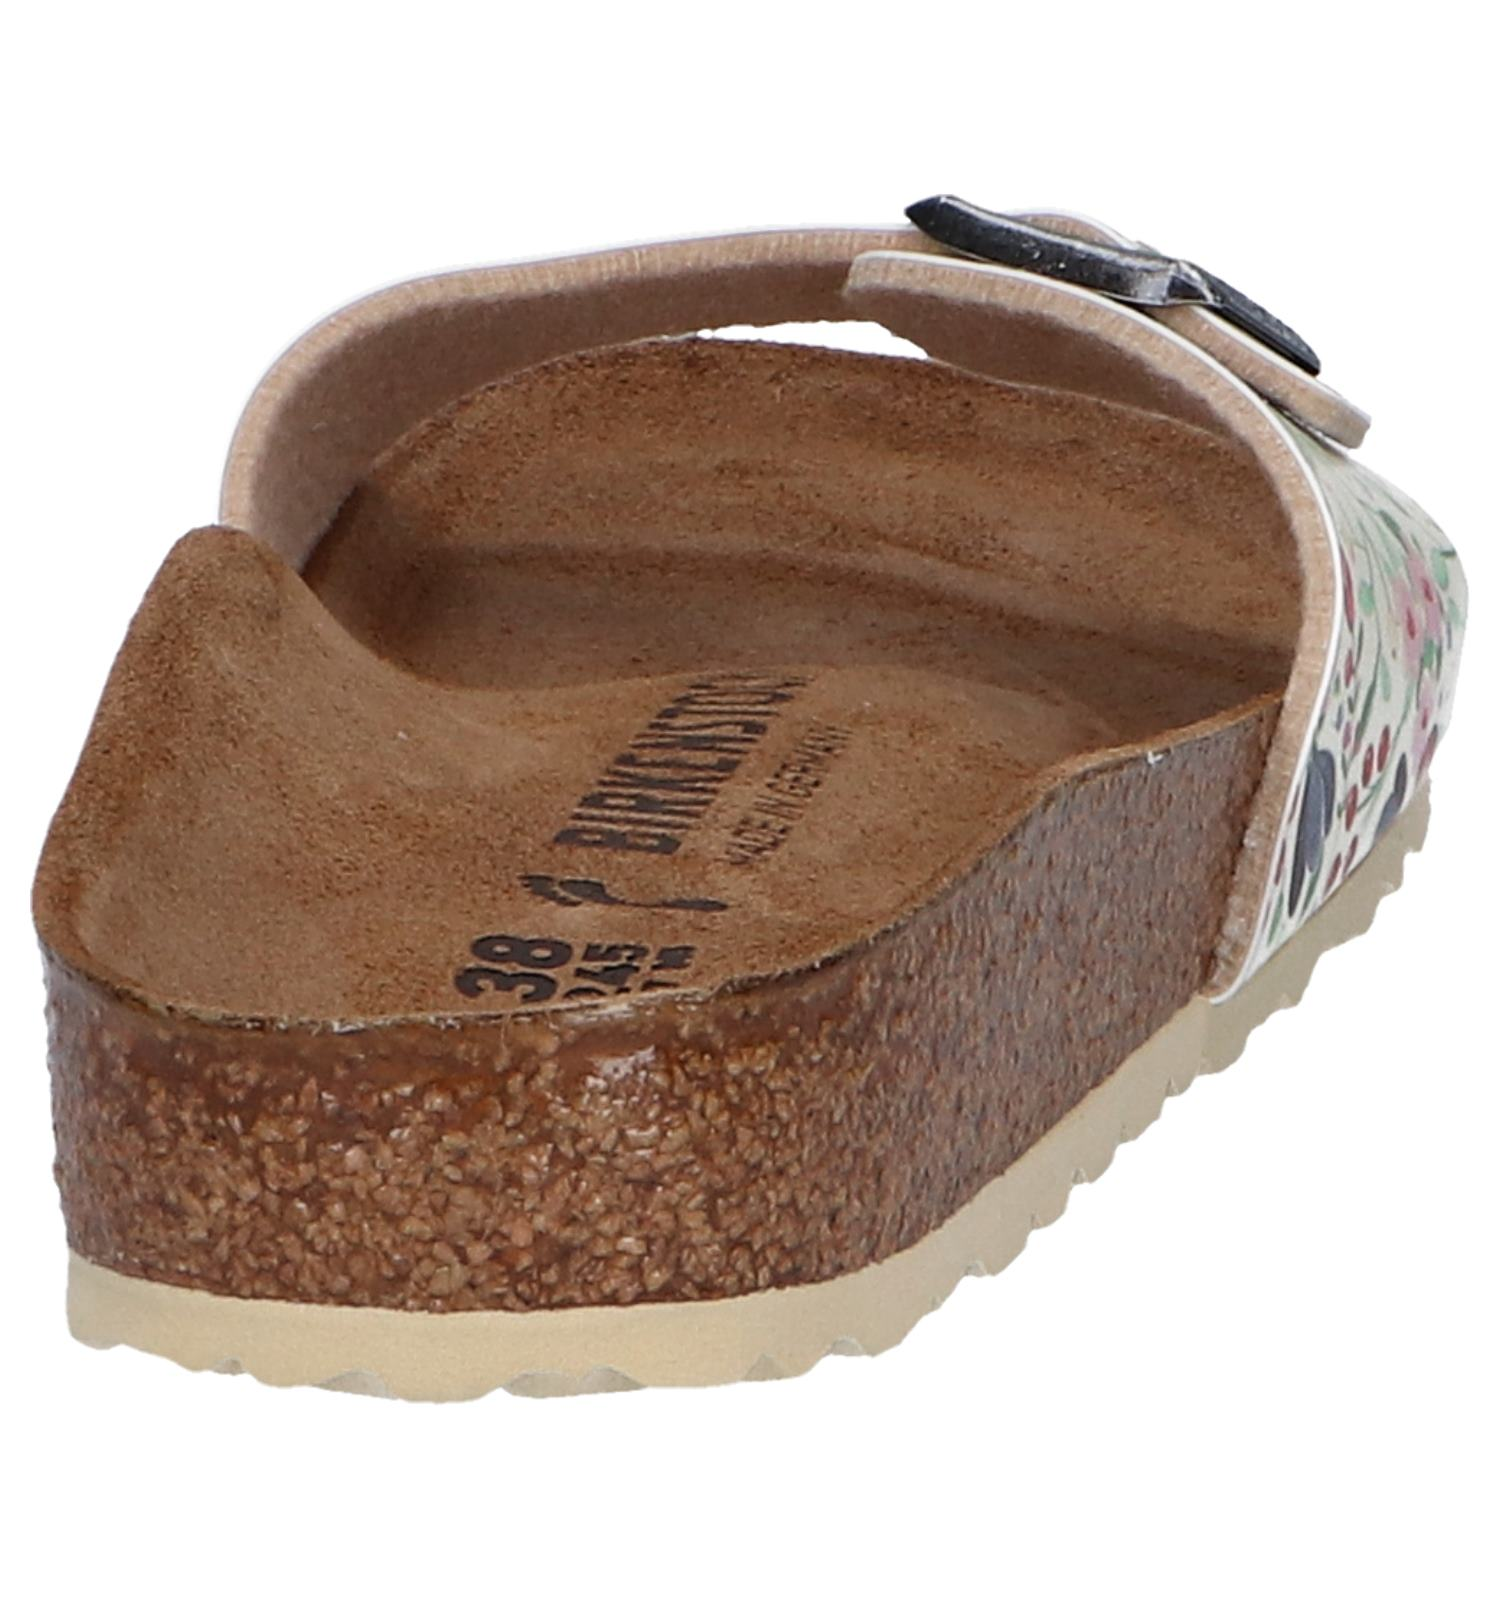 Multicolor Madrid Birkenstock Multicolor Birkenstock Slippers Multicolor Multicolor Slippers Birkenstock Slippers Madrid Slippers Madrid CBxhQtrds